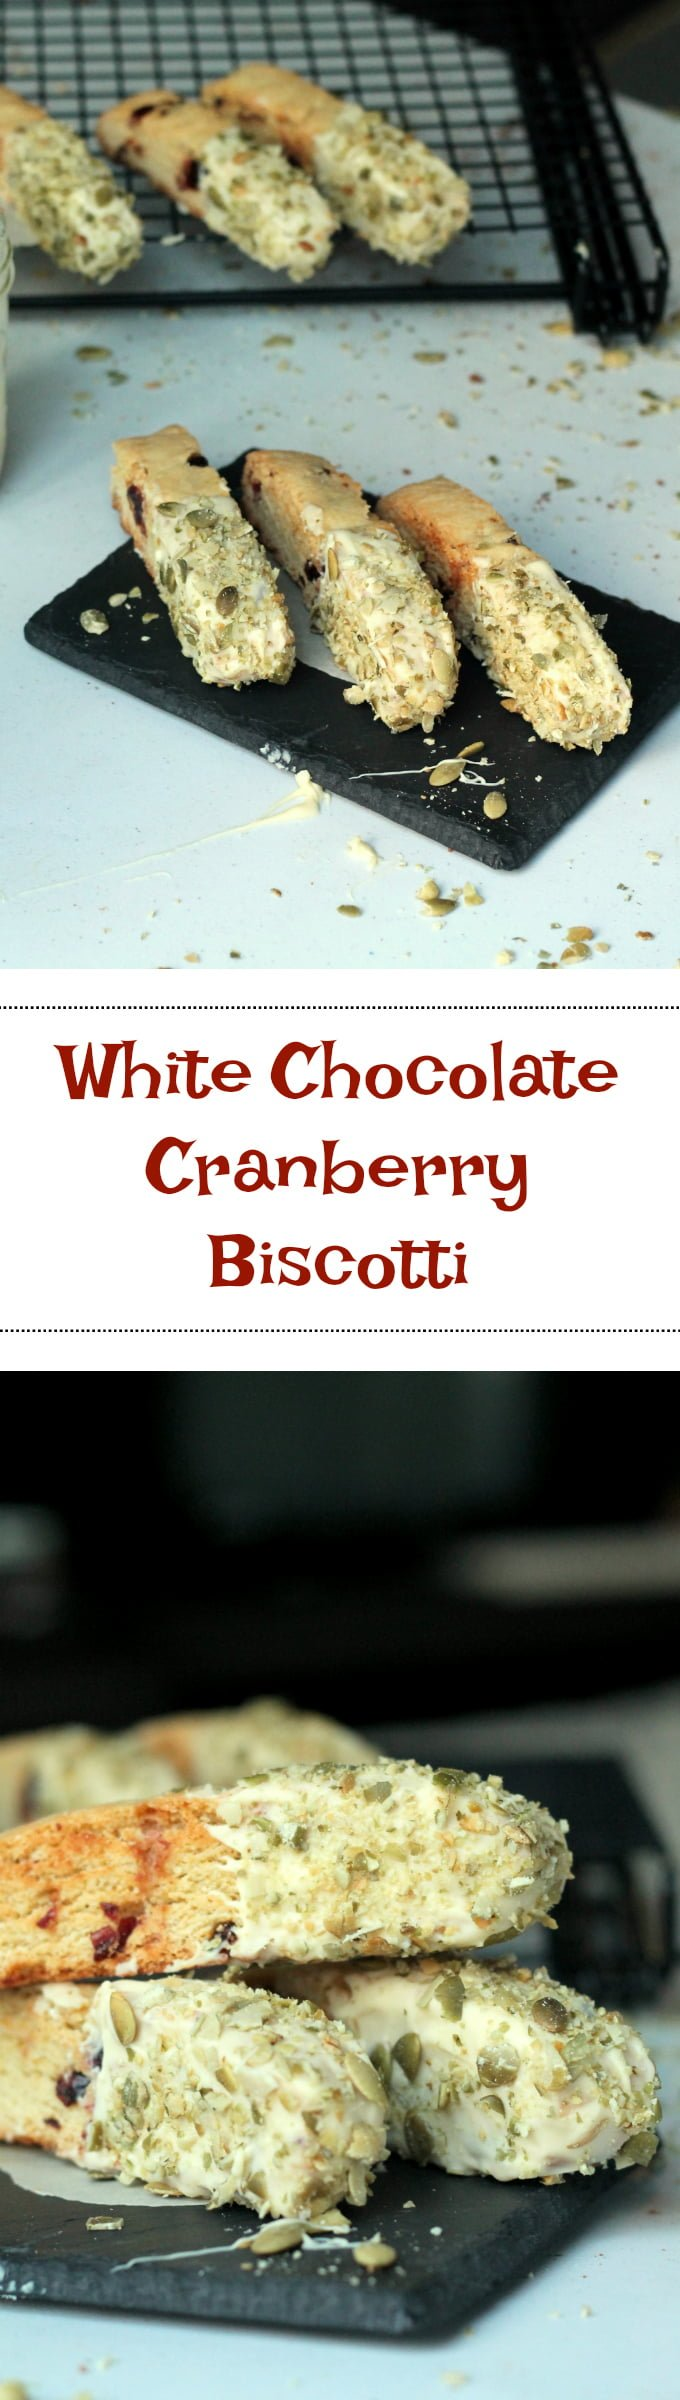 White Chocolate Cranberry Biscotti Recipe - perfect dessert for the holiday season and makes the perfect hostess gift or stocking stuffer.